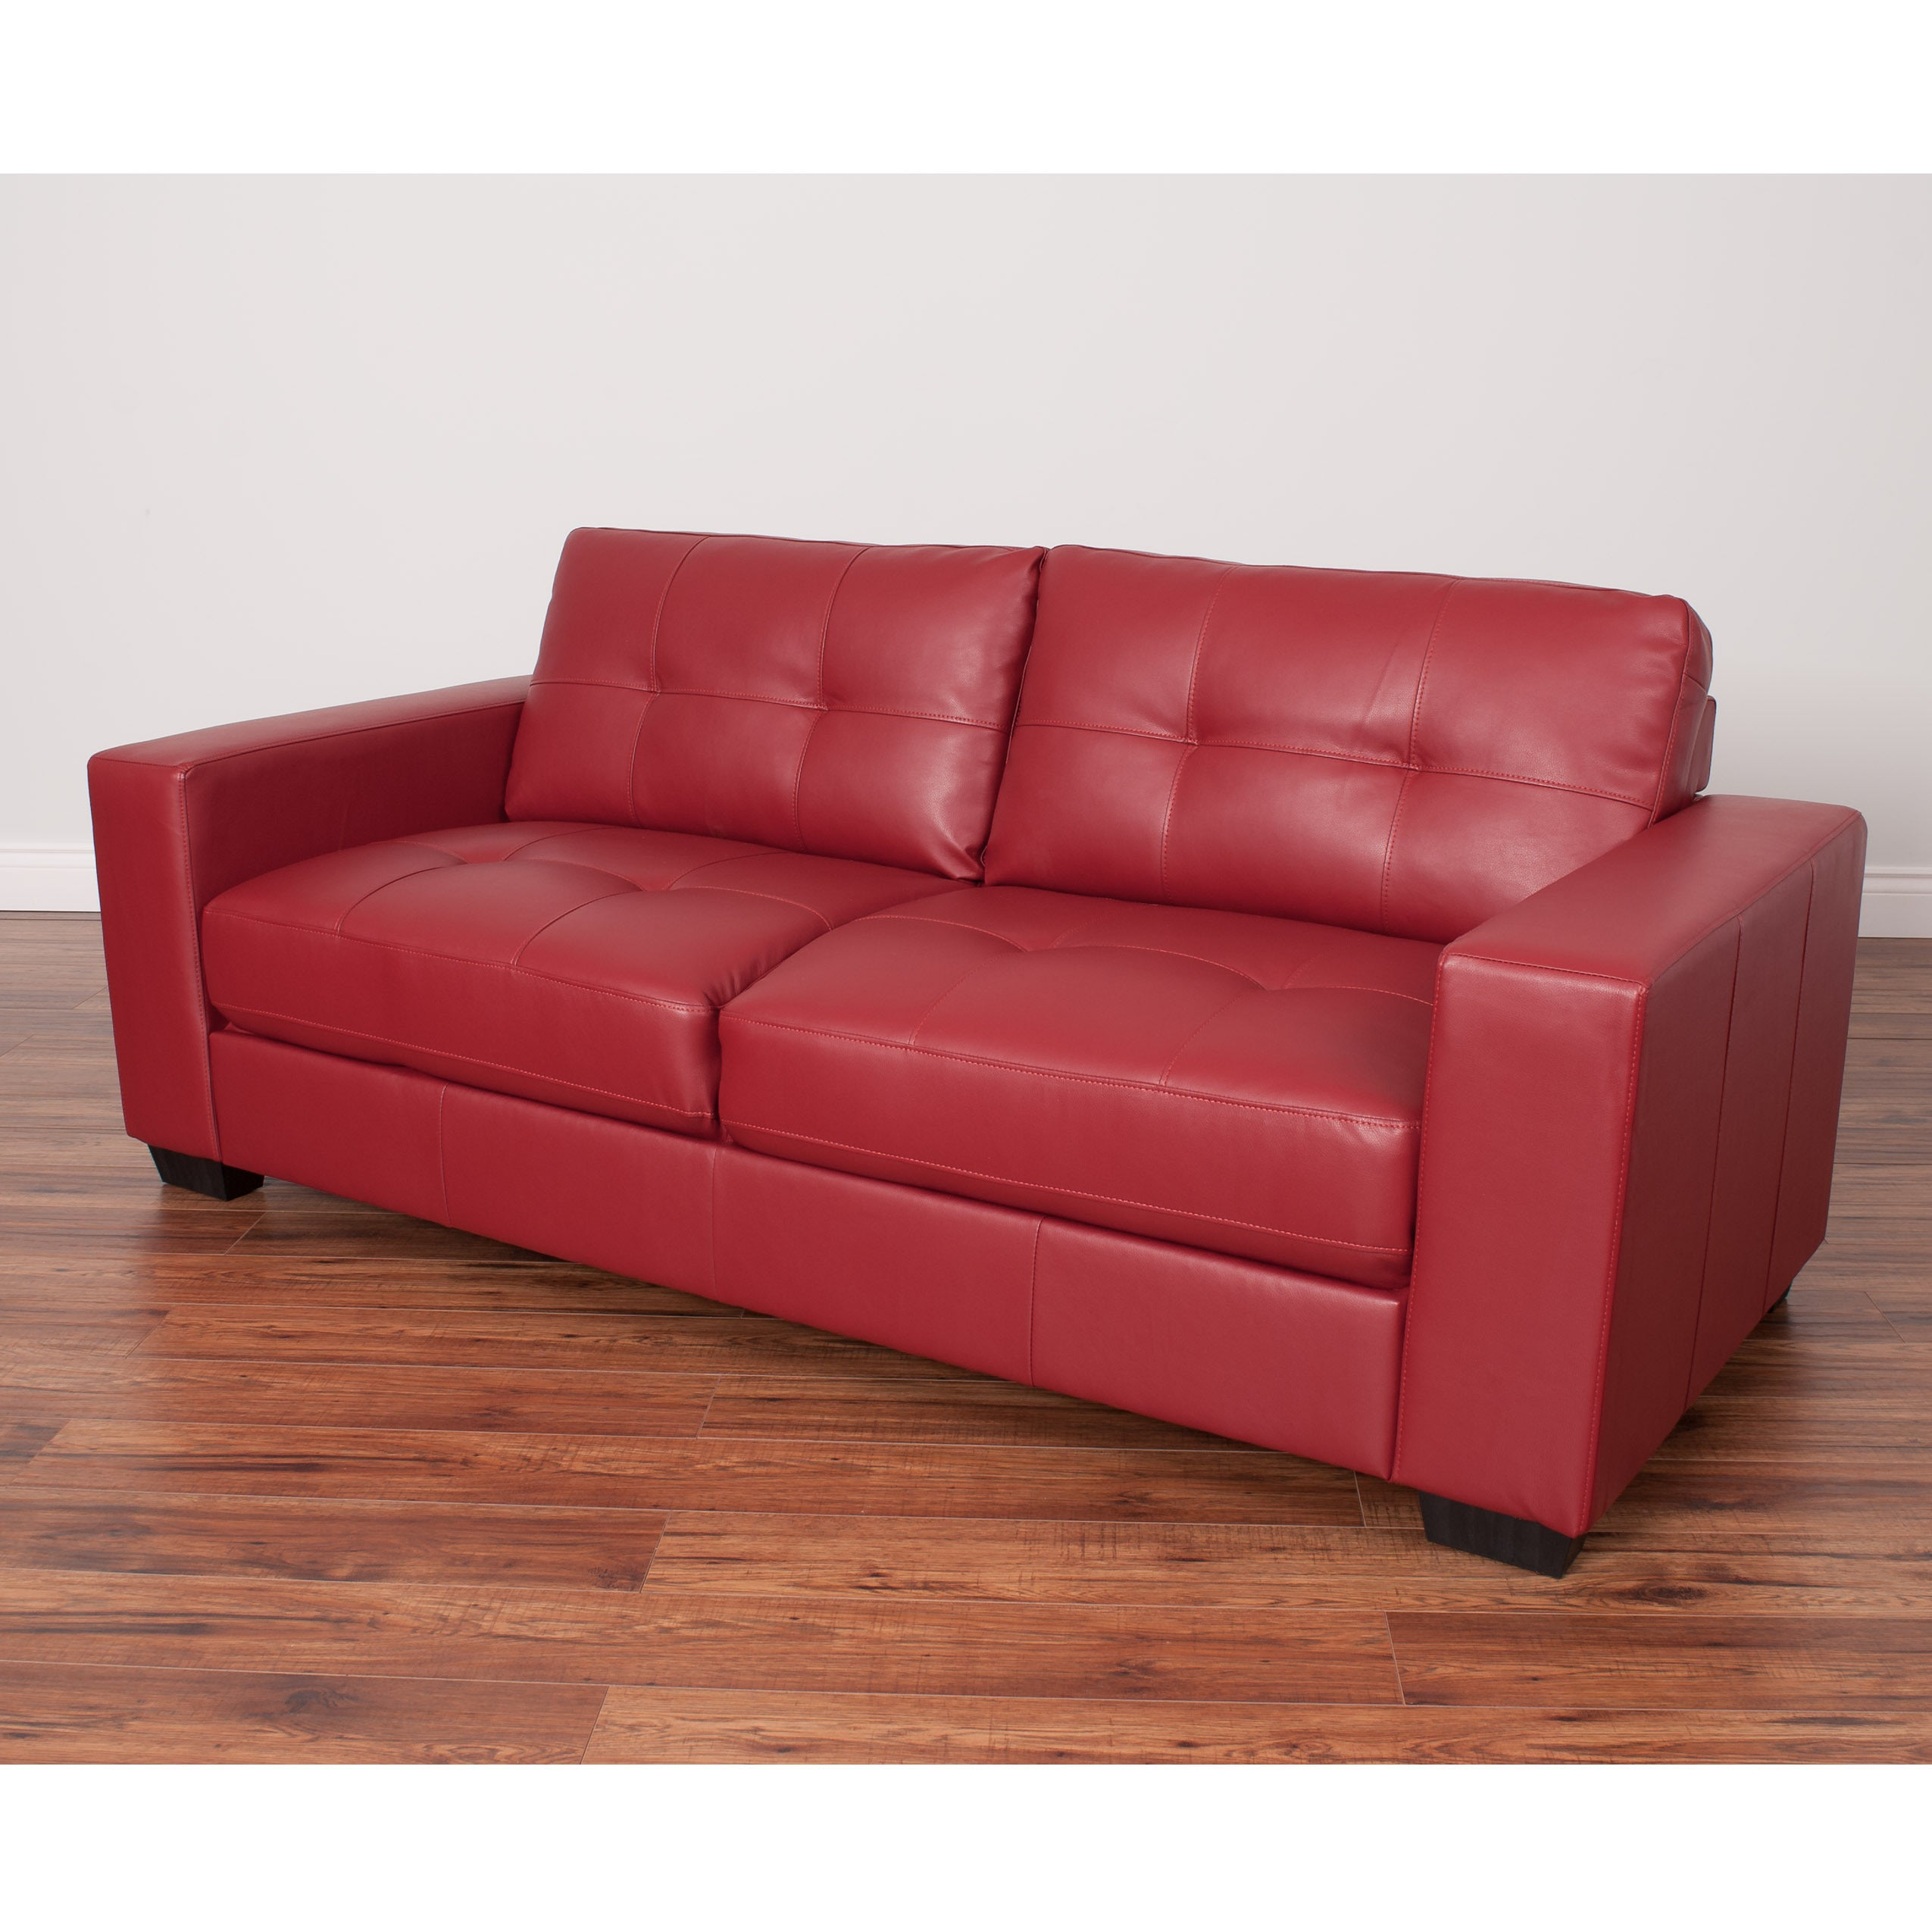 CorLiving Club Tufted Bonded Leather Sofa (Red)